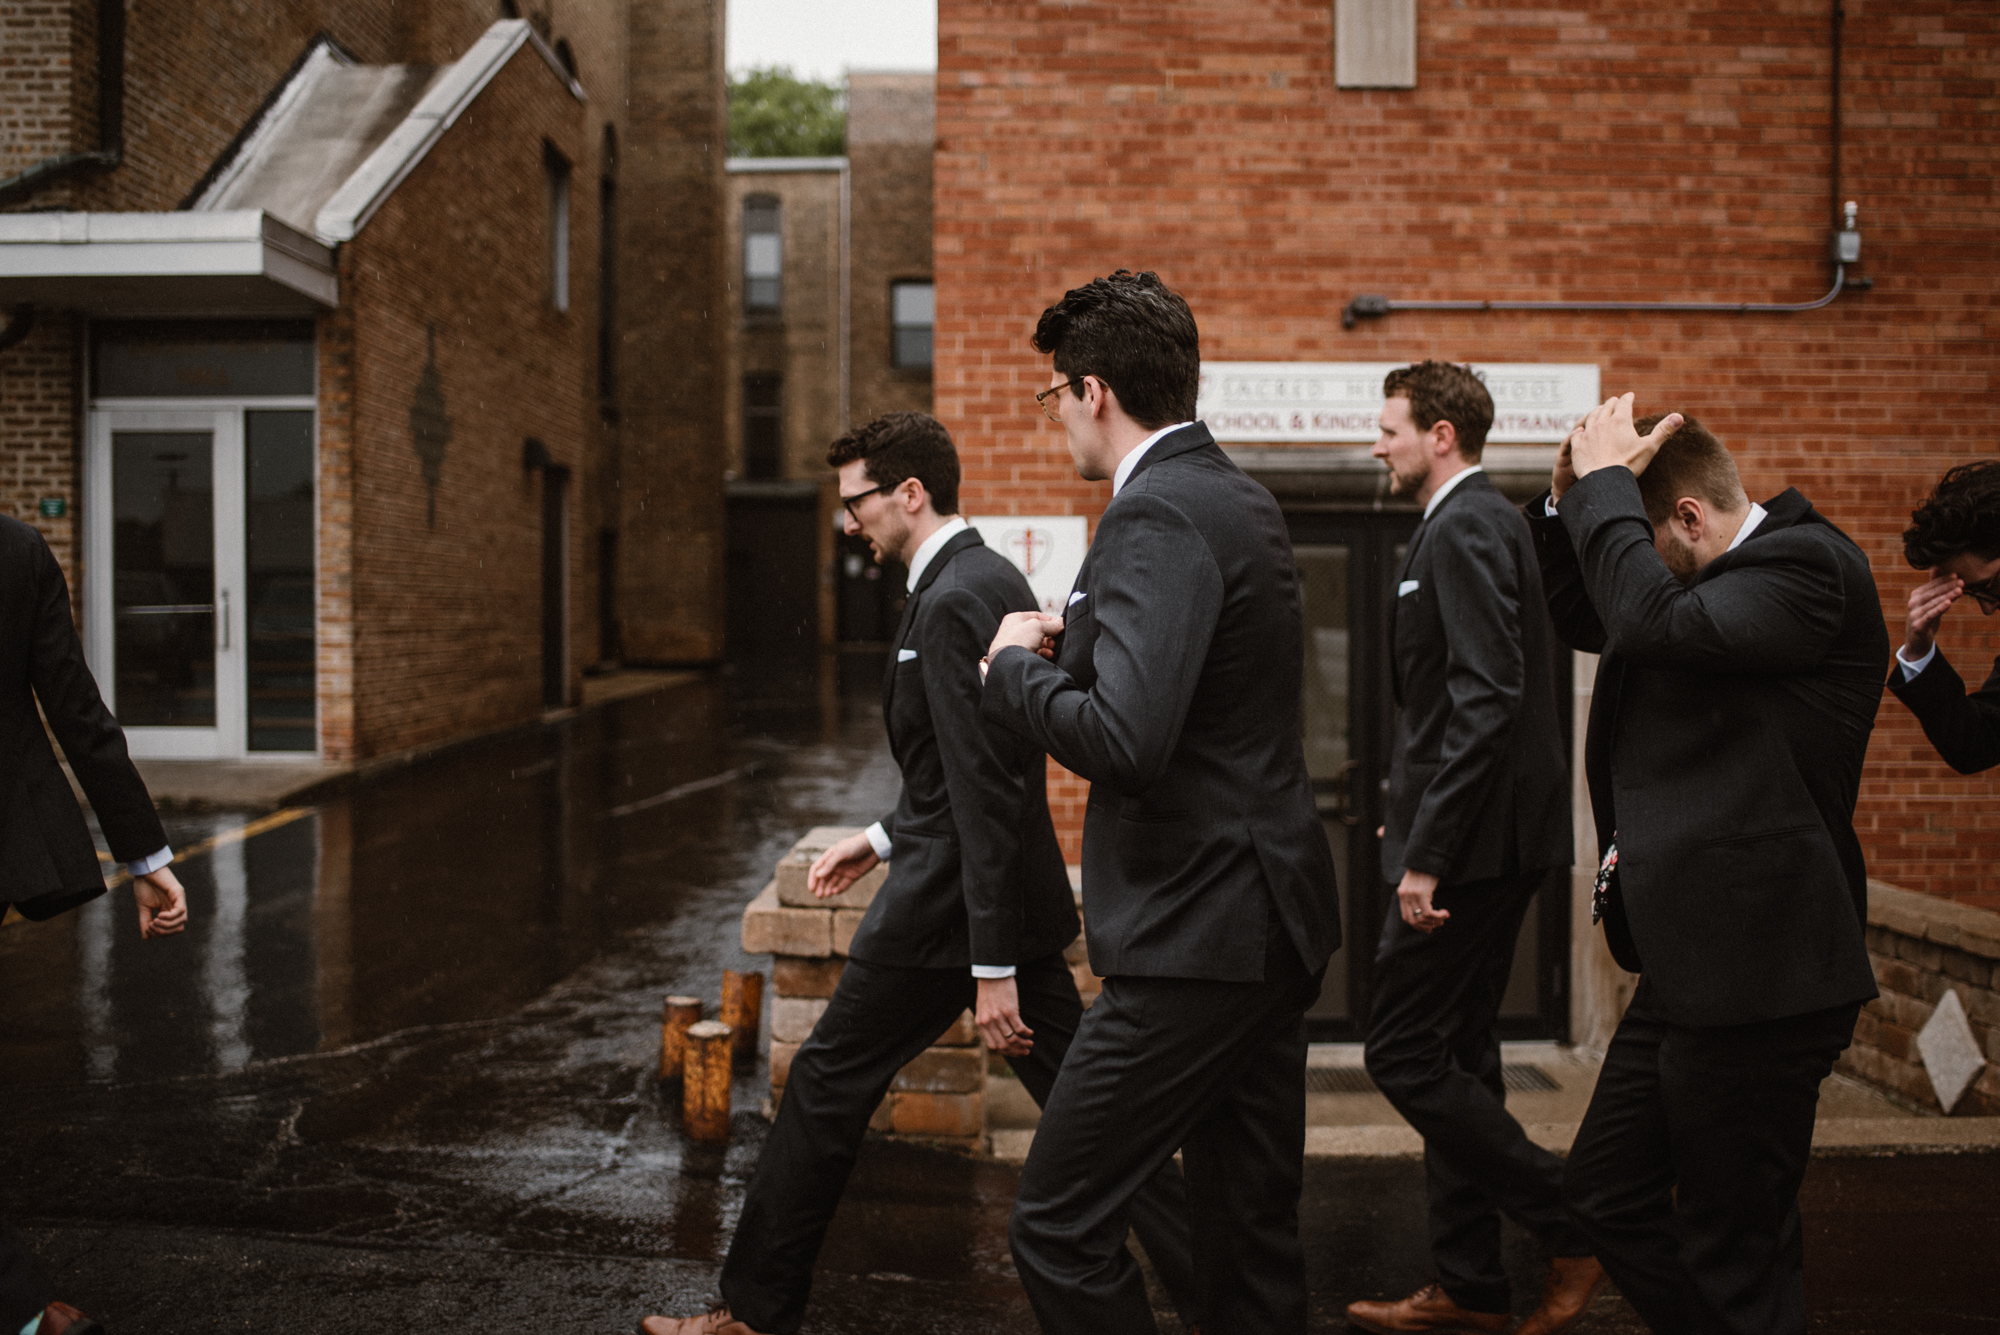 Mairi and Jude - Rainy Backyard Wedding - Intimate Wedding - Fun Reception Photos - Chicago Wedding Photographer - Catholic Wedding - White Sails Creative - Virginia Backyard Wedding Photographer_14.jpg